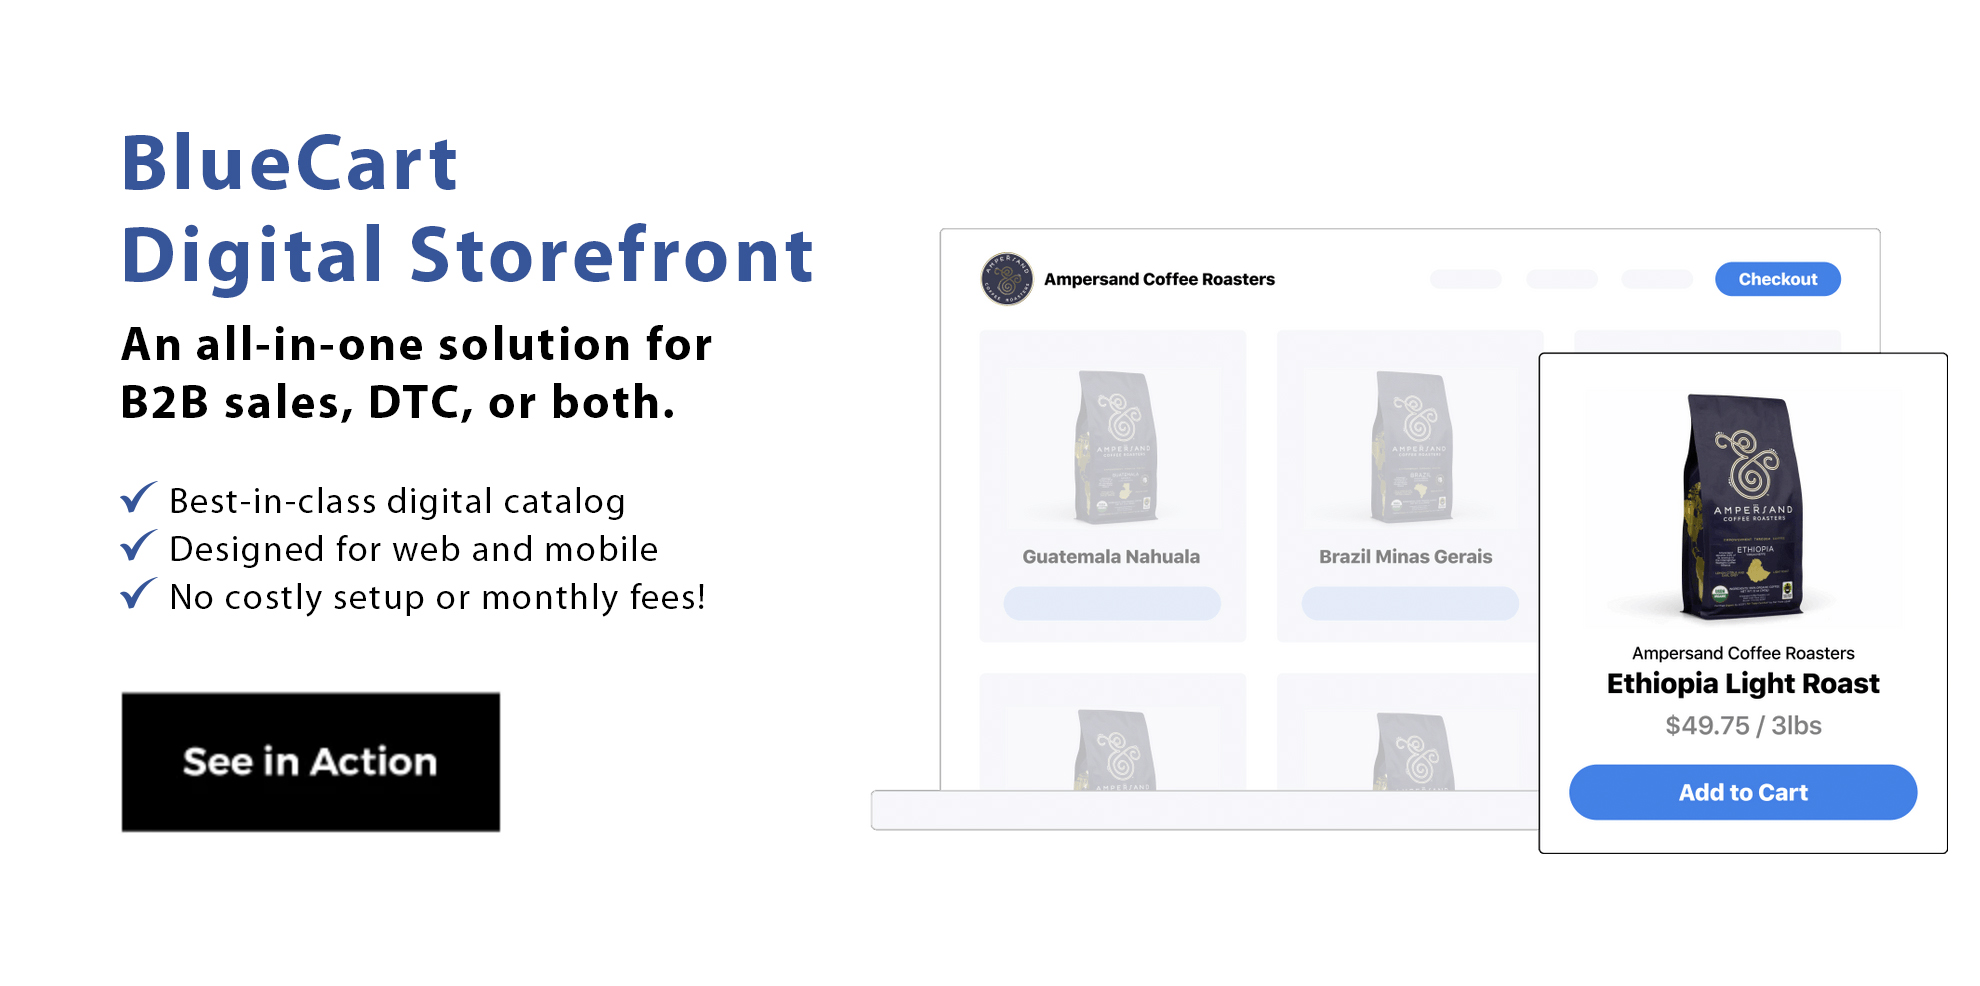 See the BlueCart Digital Storefront in Action